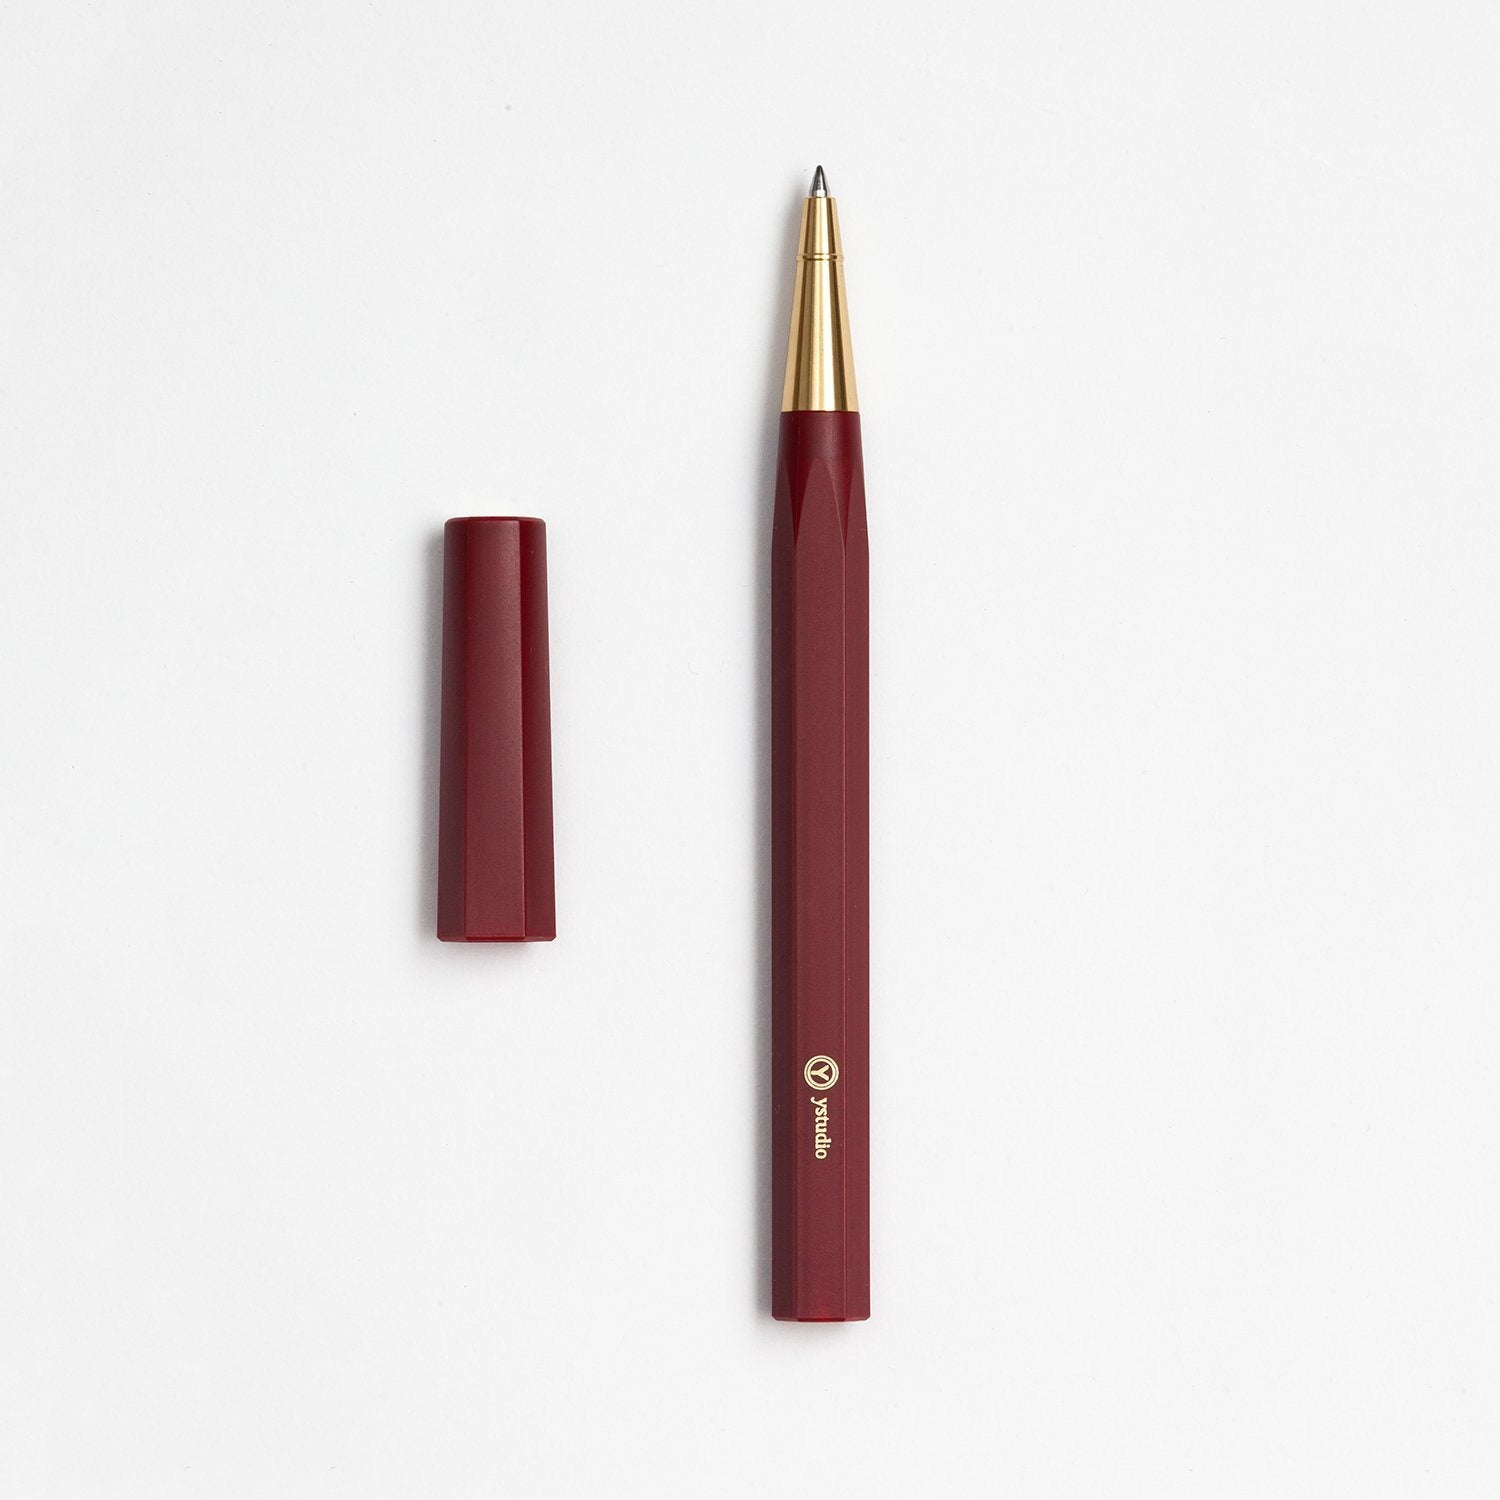 Ystudio - Resin Rollerball Pen (Red)